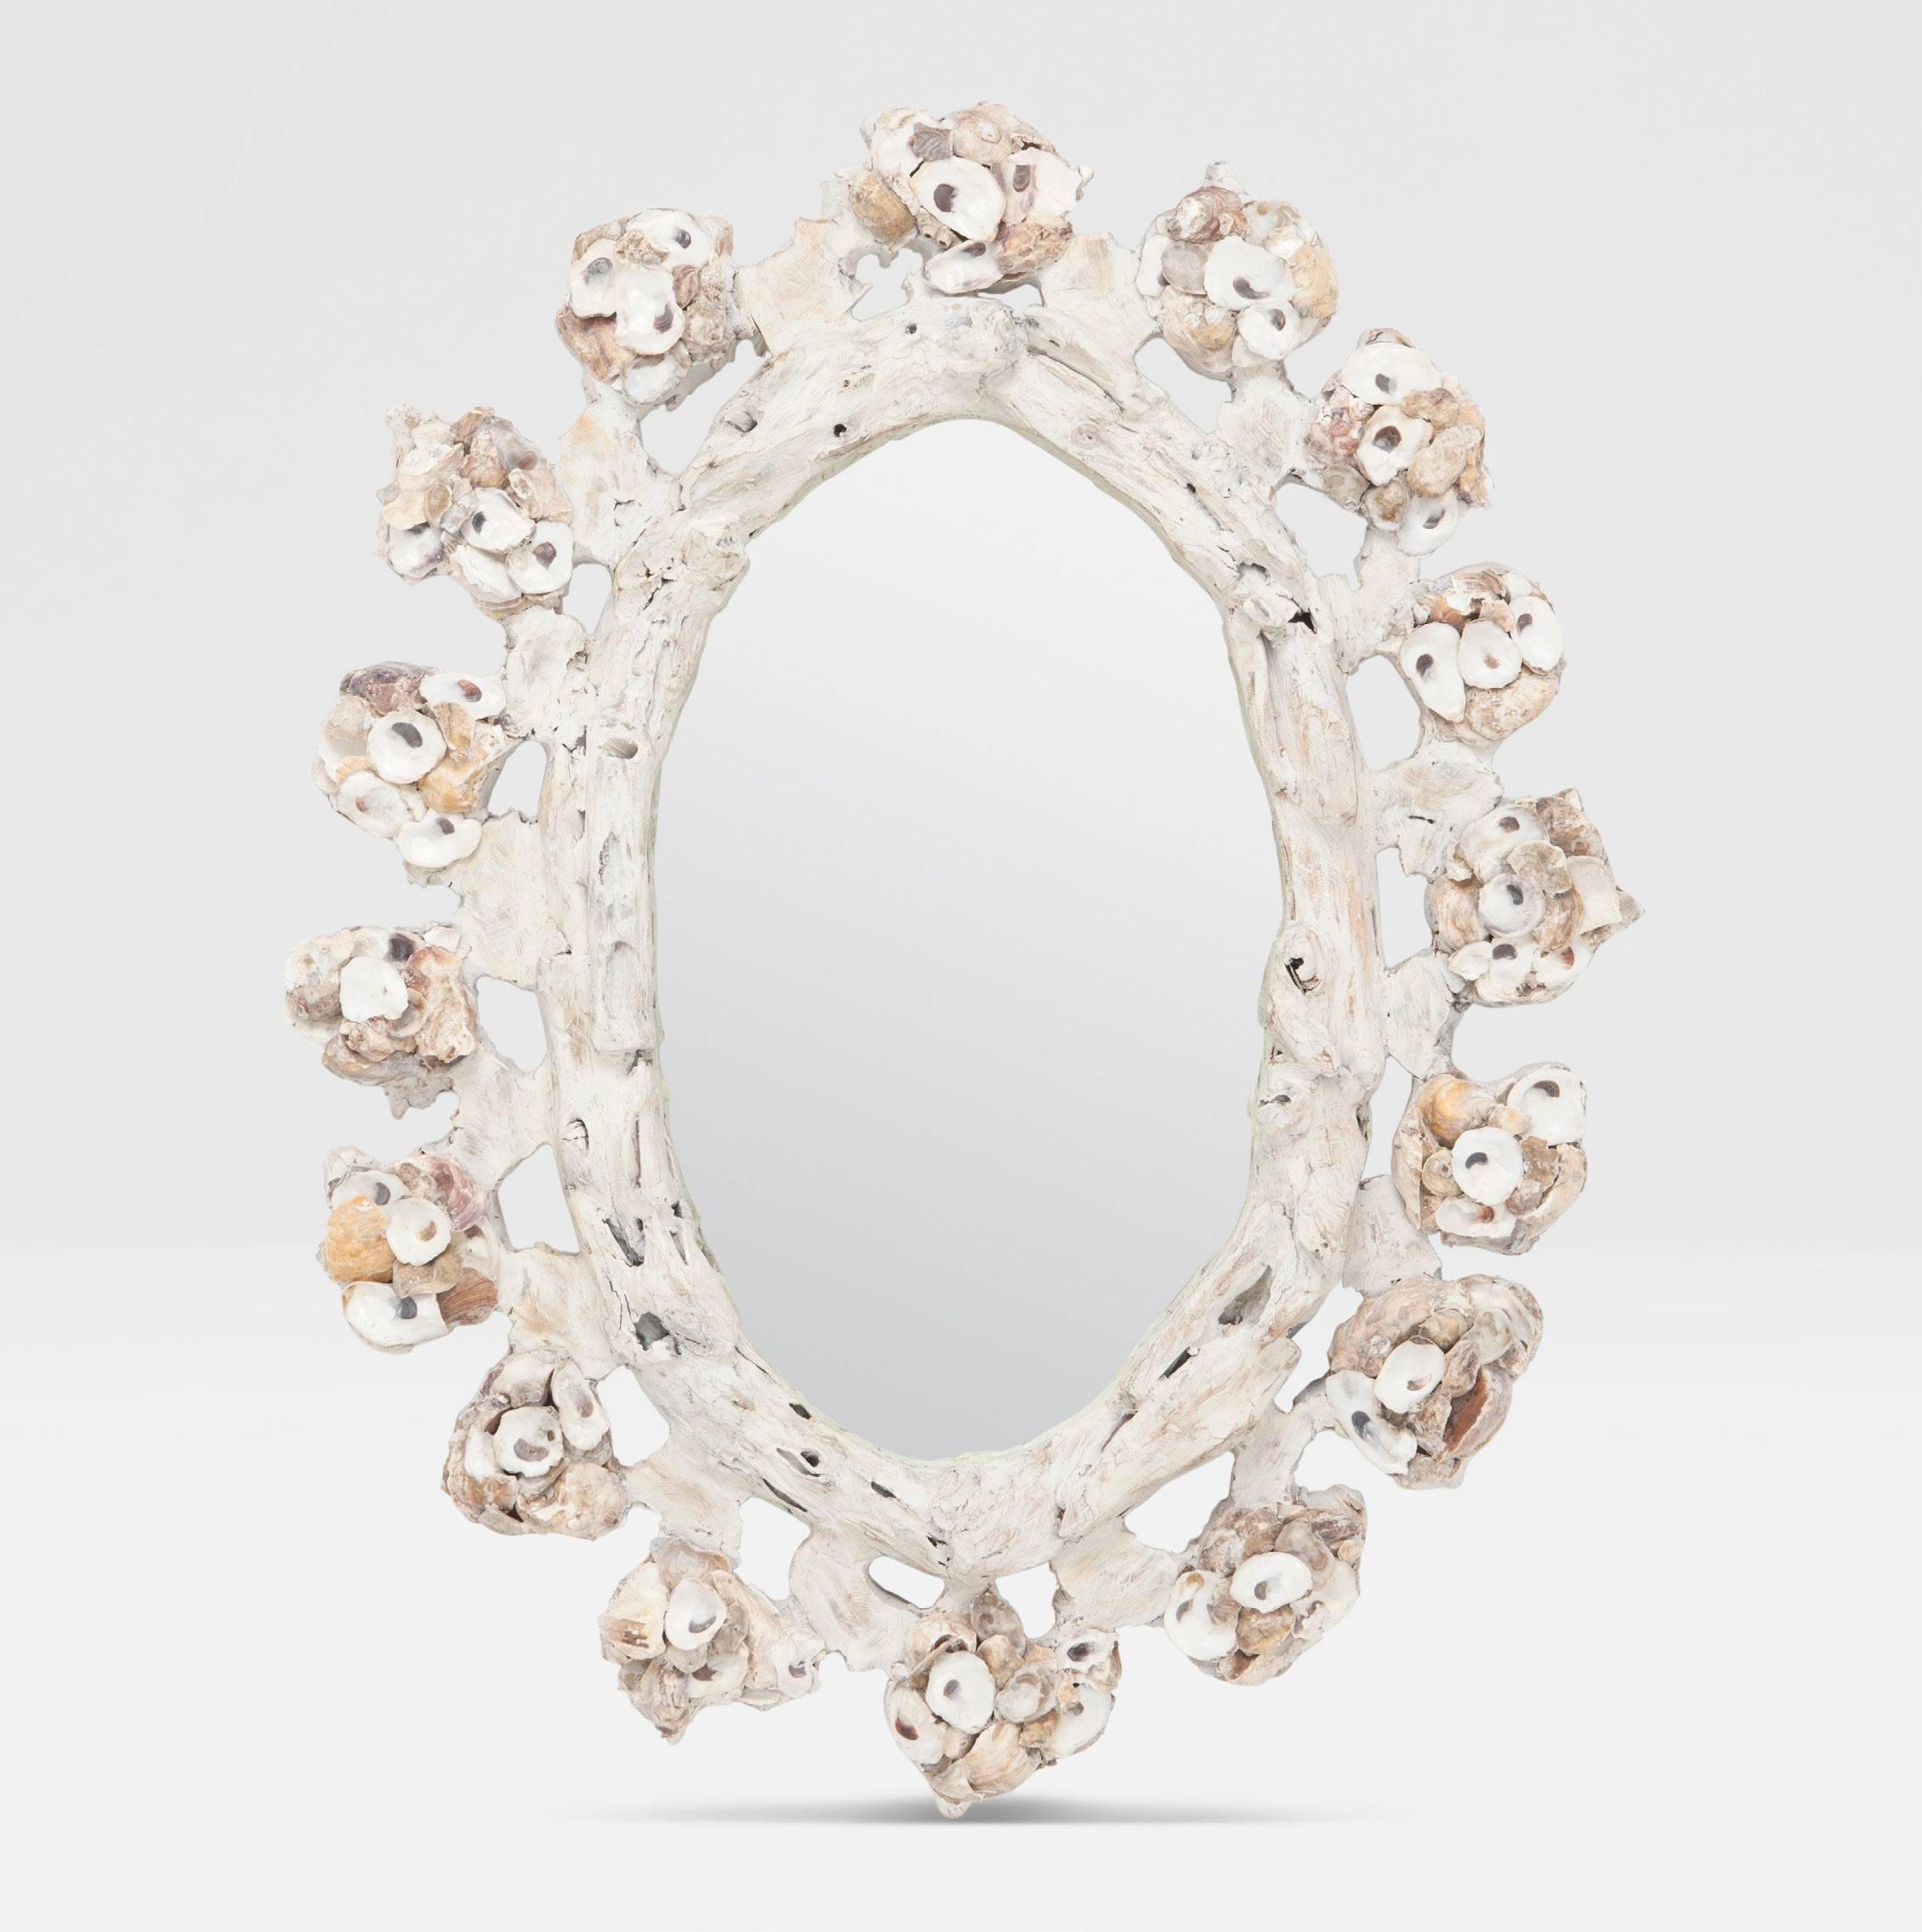 Willis White Oval Oyster Shell Mirror - Mecox Gardens with regard to White Oval Mirrors (Image 25 of 25)